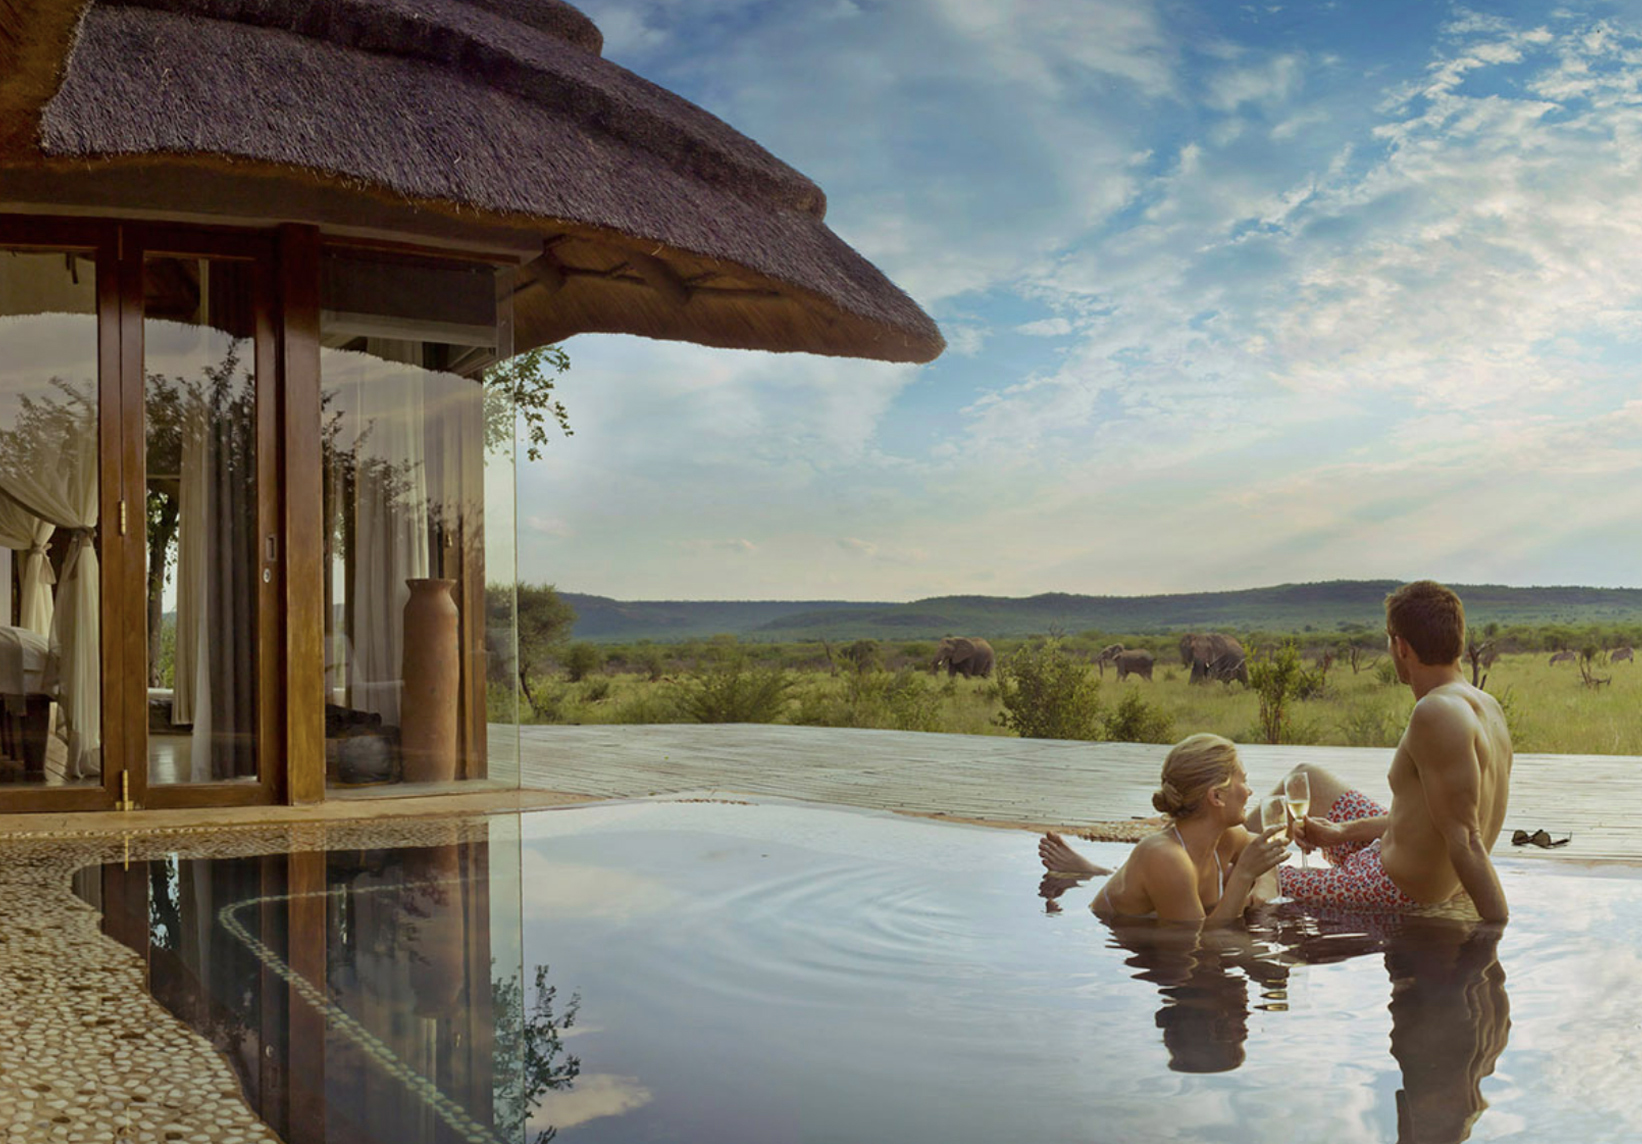 Experience a South Africa Bush Retreat, Donated by Vance Kershner and Chrissy Hitchens